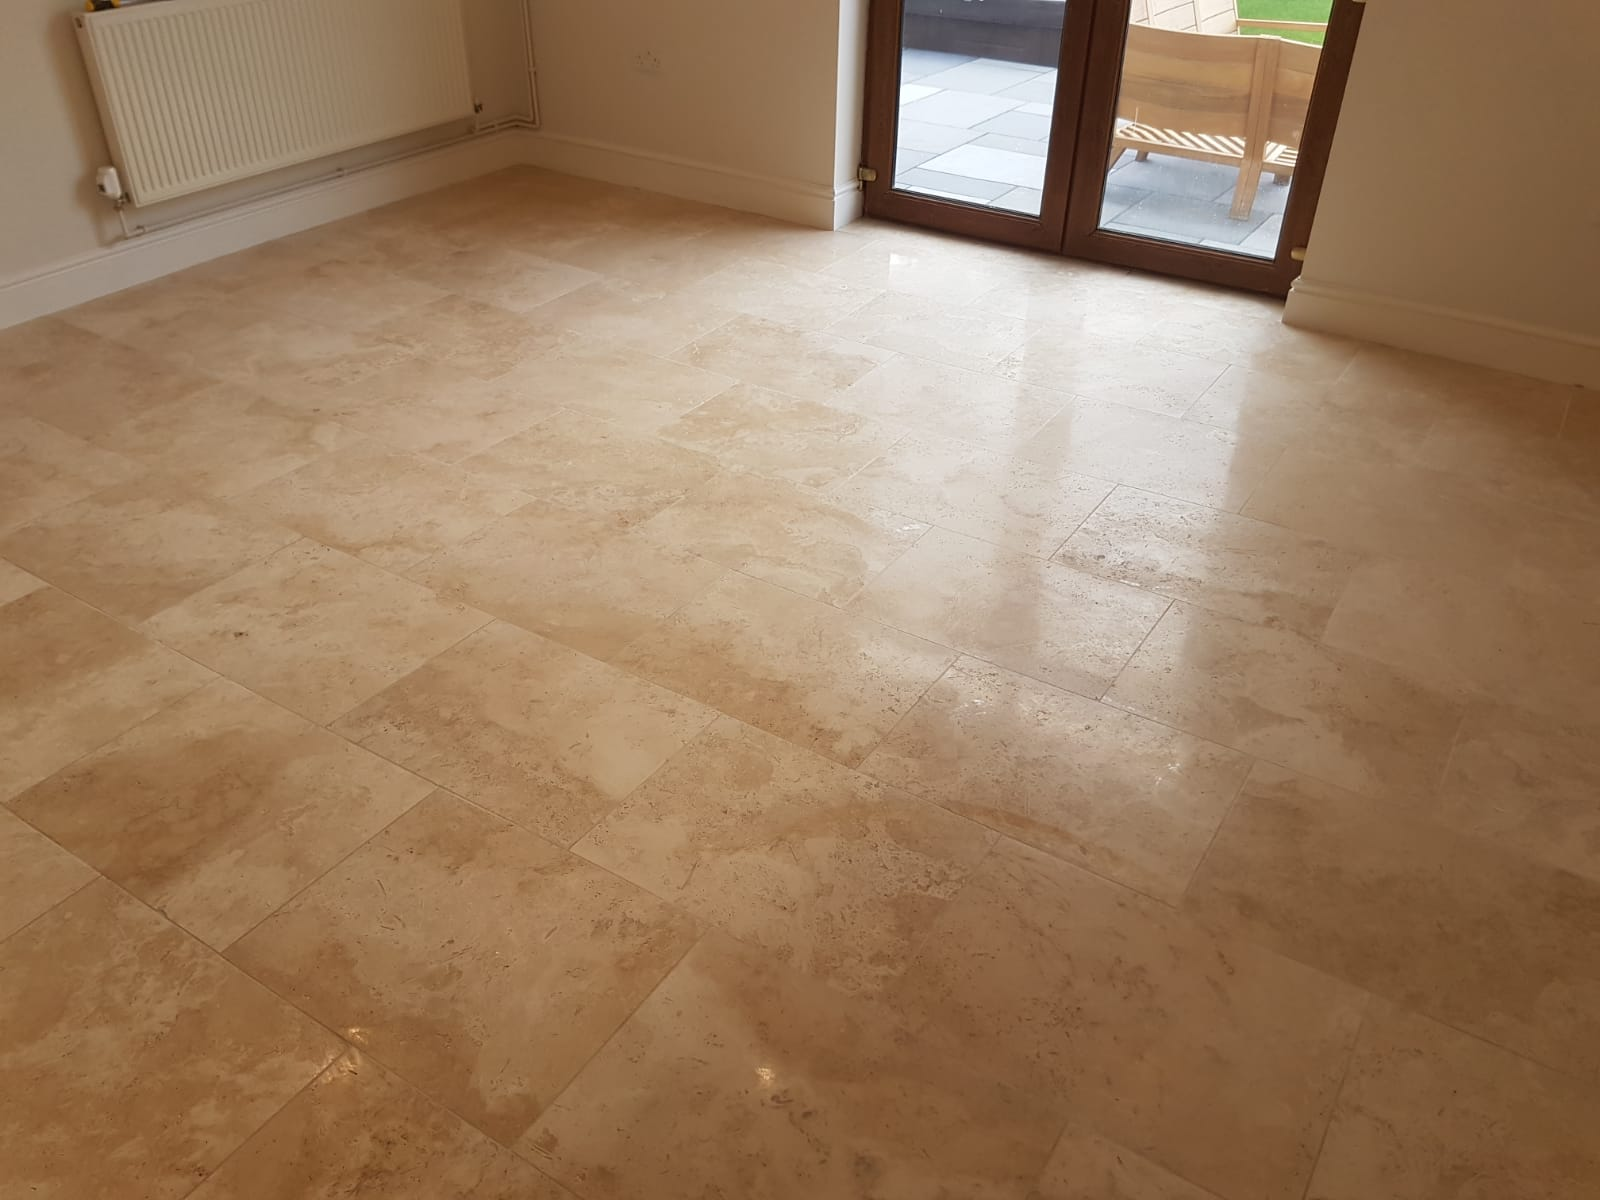 Travertine Floor with Lippage Issues After Milling in Gower Swansea